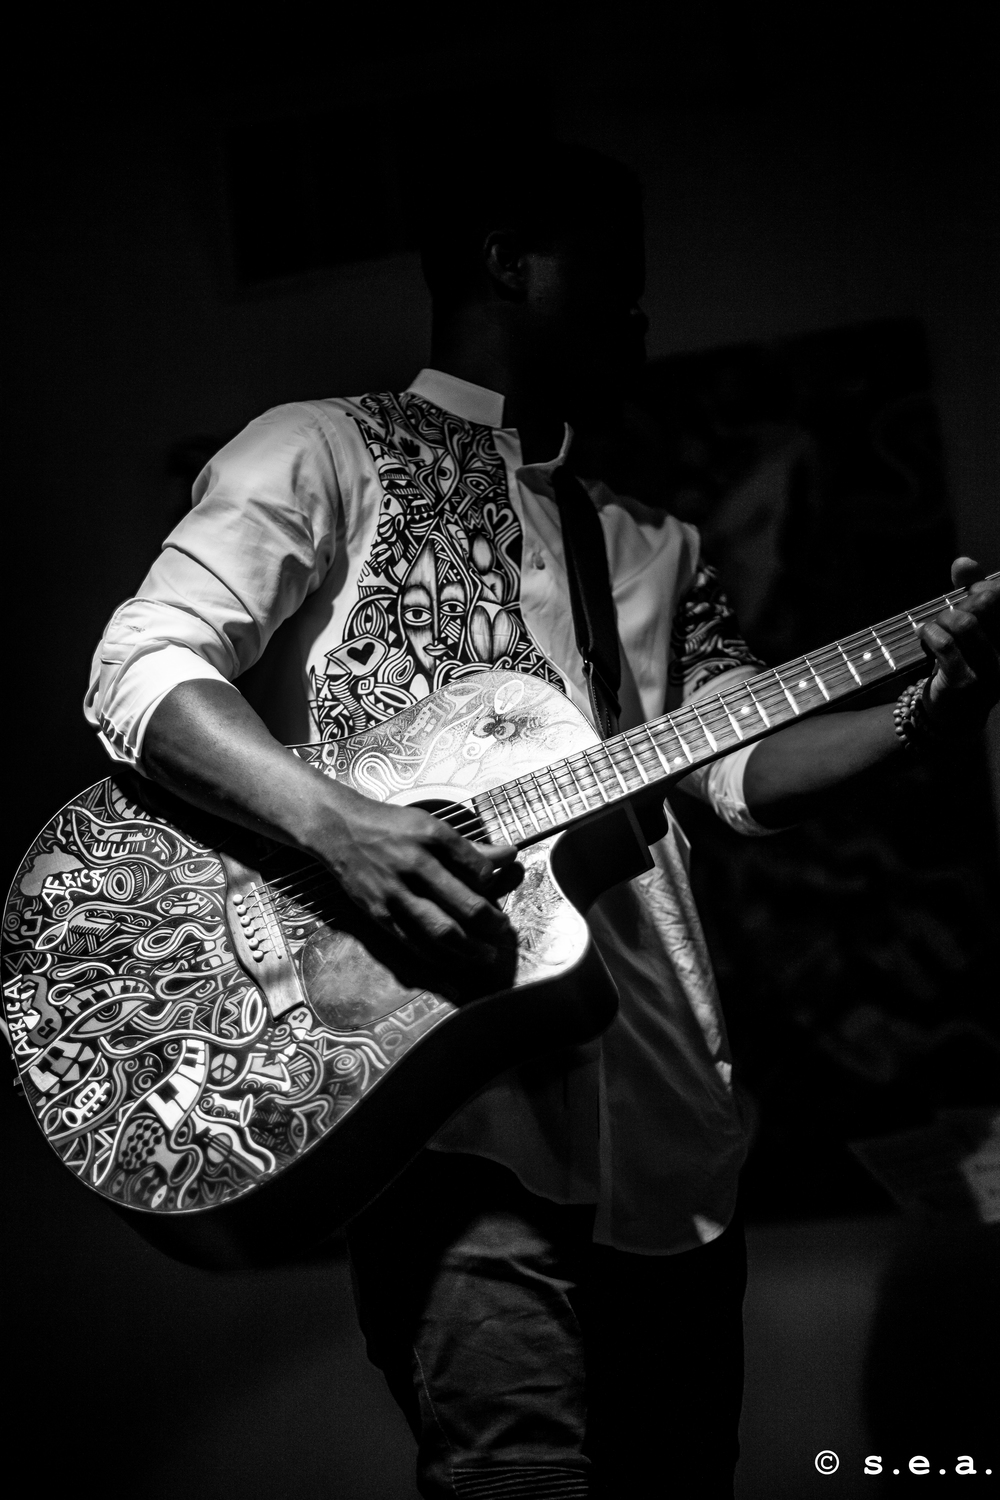 Laolu Senbango_Canvas Launch_Edits-12.27.2015-34.jpg